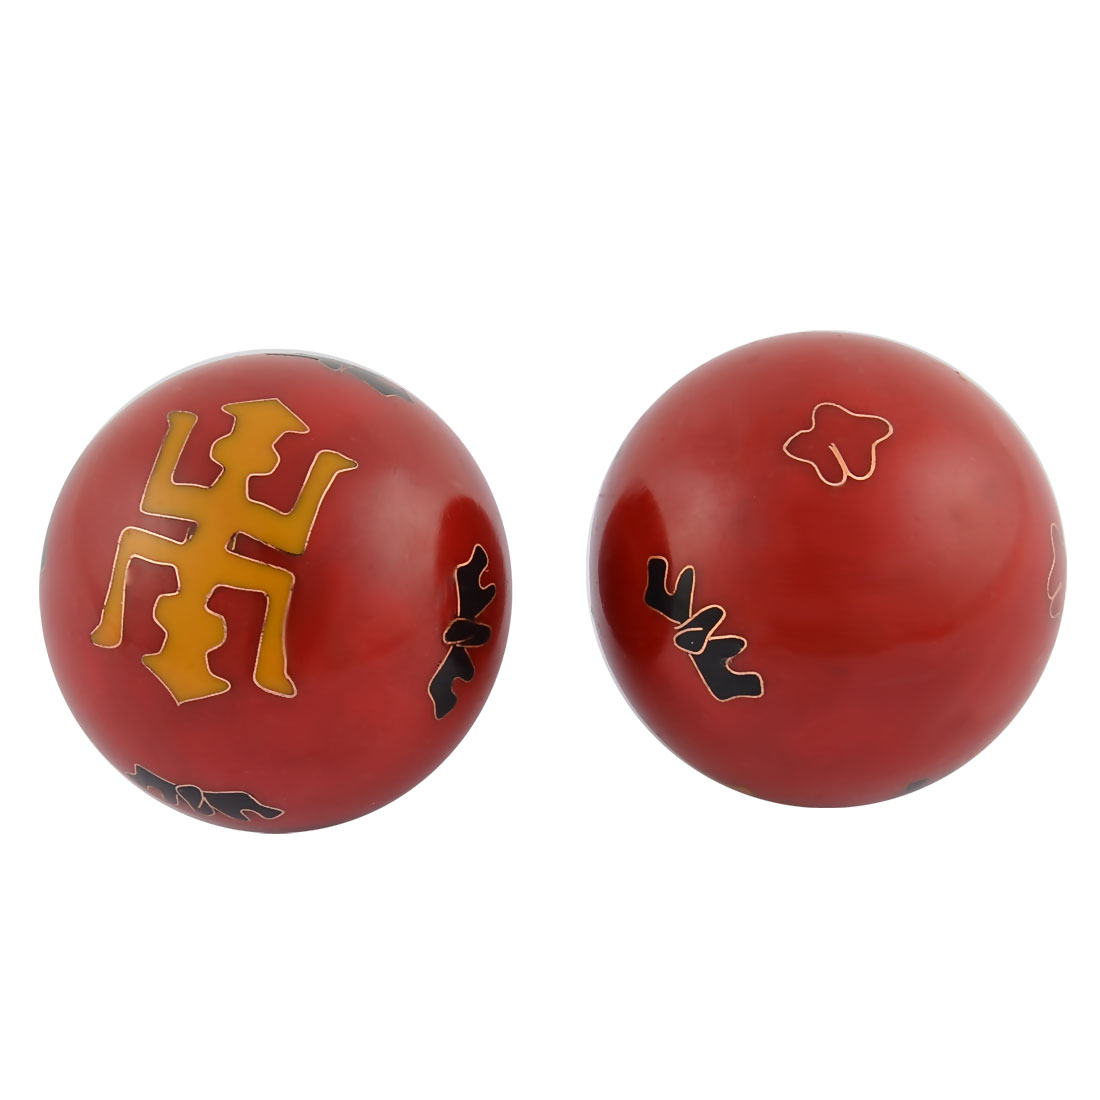 Cloisonne Vintage Style Chinese Baoding Hand Palm Exercise Healthy Ball Red Pair